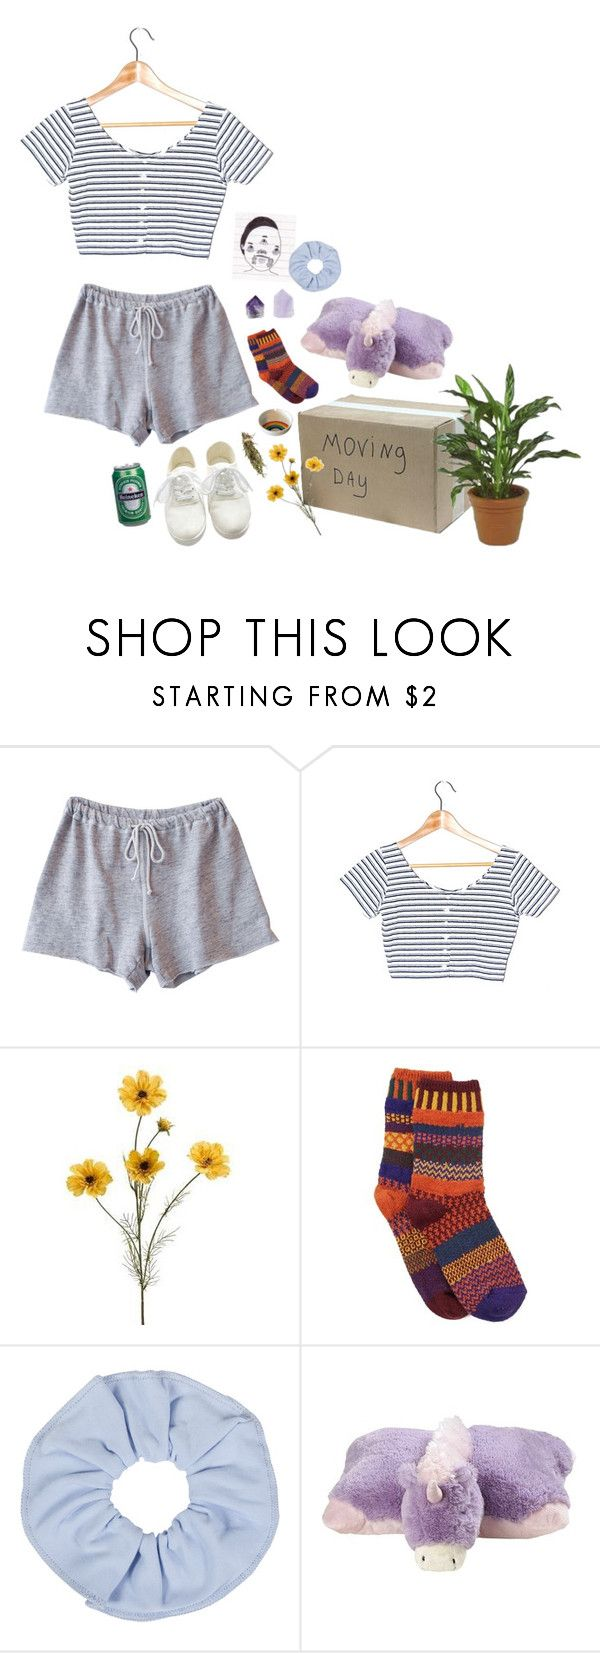 """""""she is leaving"""" by fairhykid ❤ liked on Polyvore featuring Clu, Solmate Socks and Pillow Pets"""